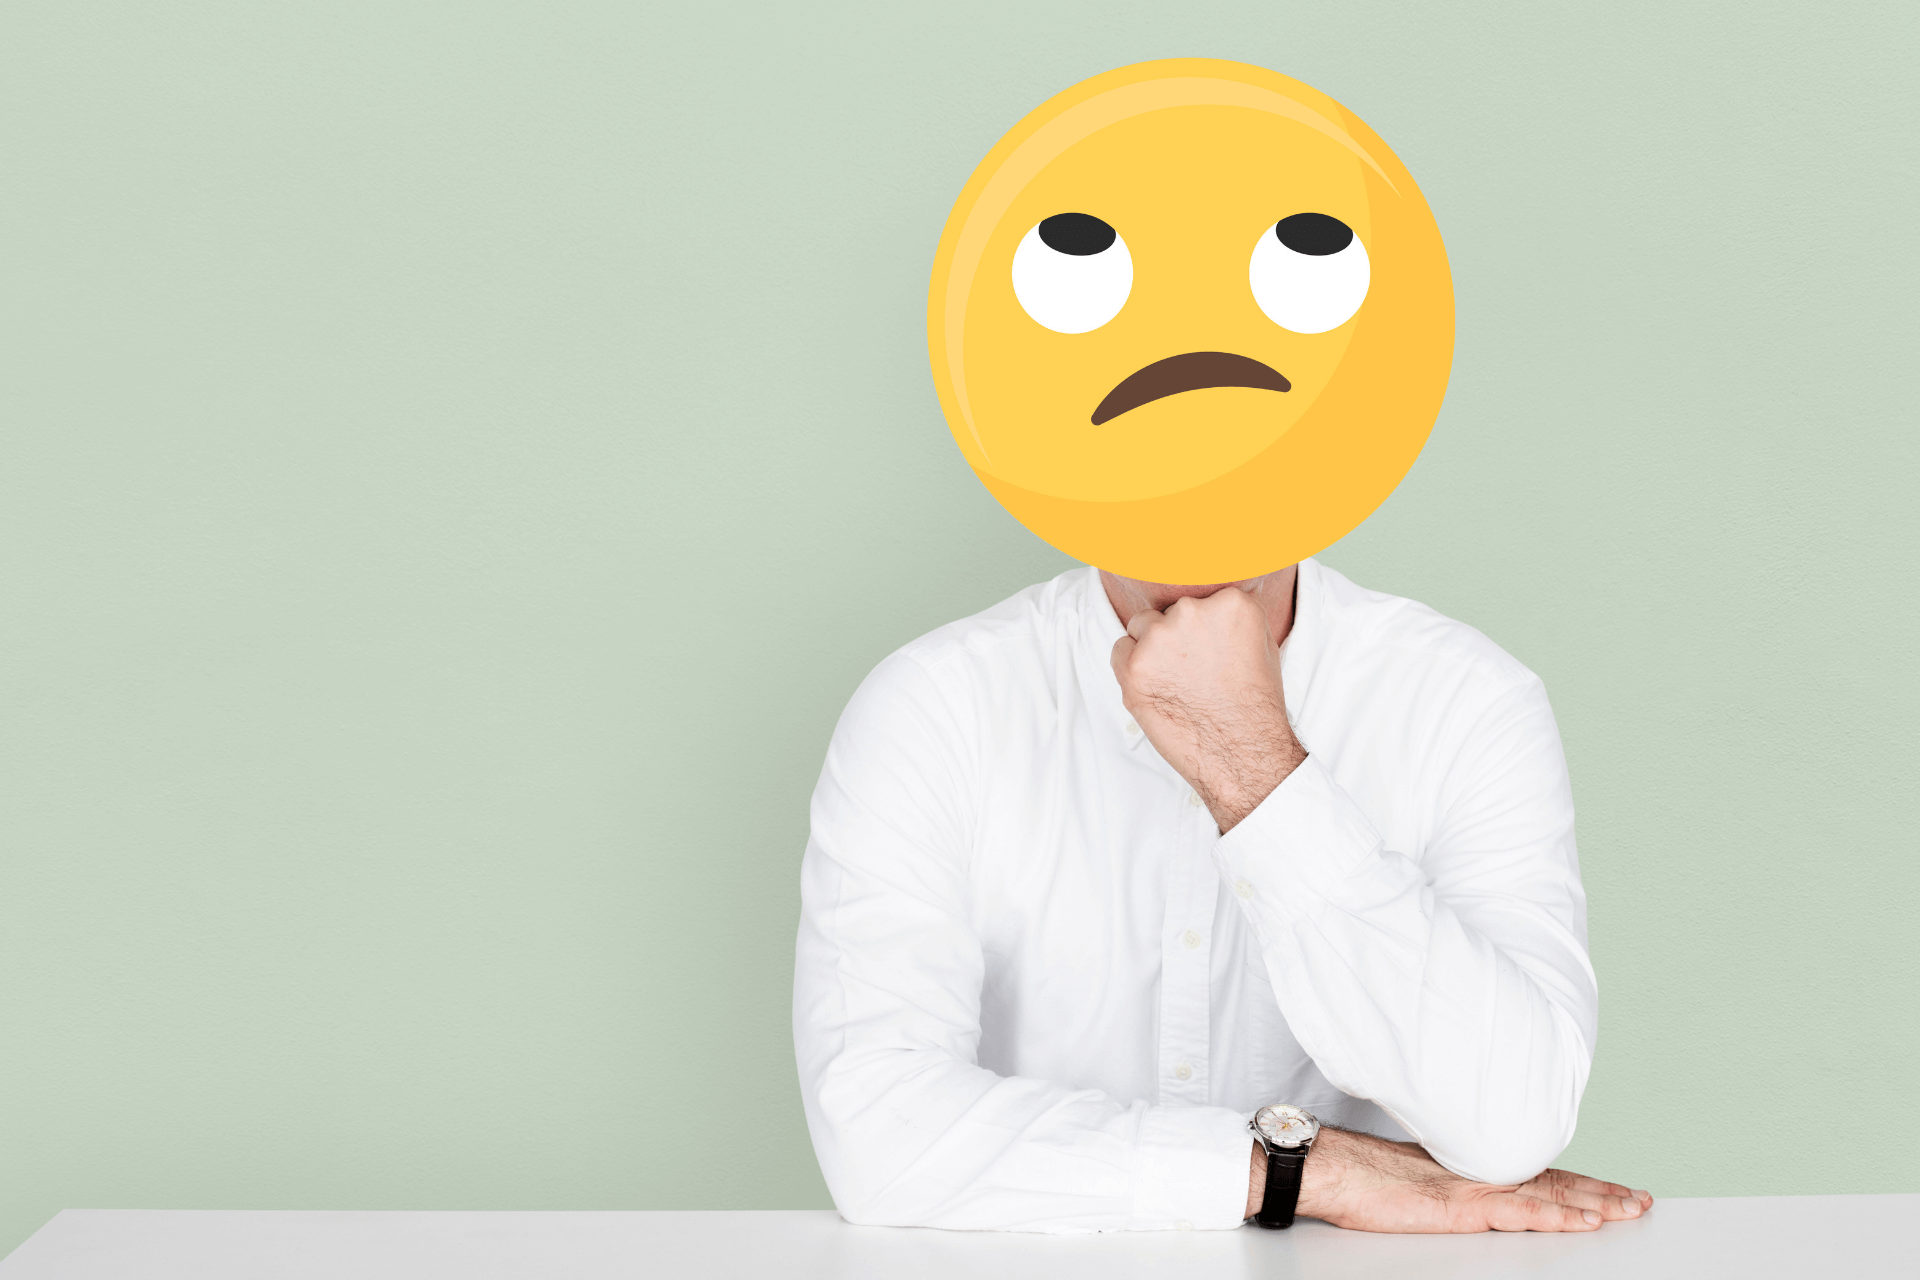 Man body with worried emoji on face